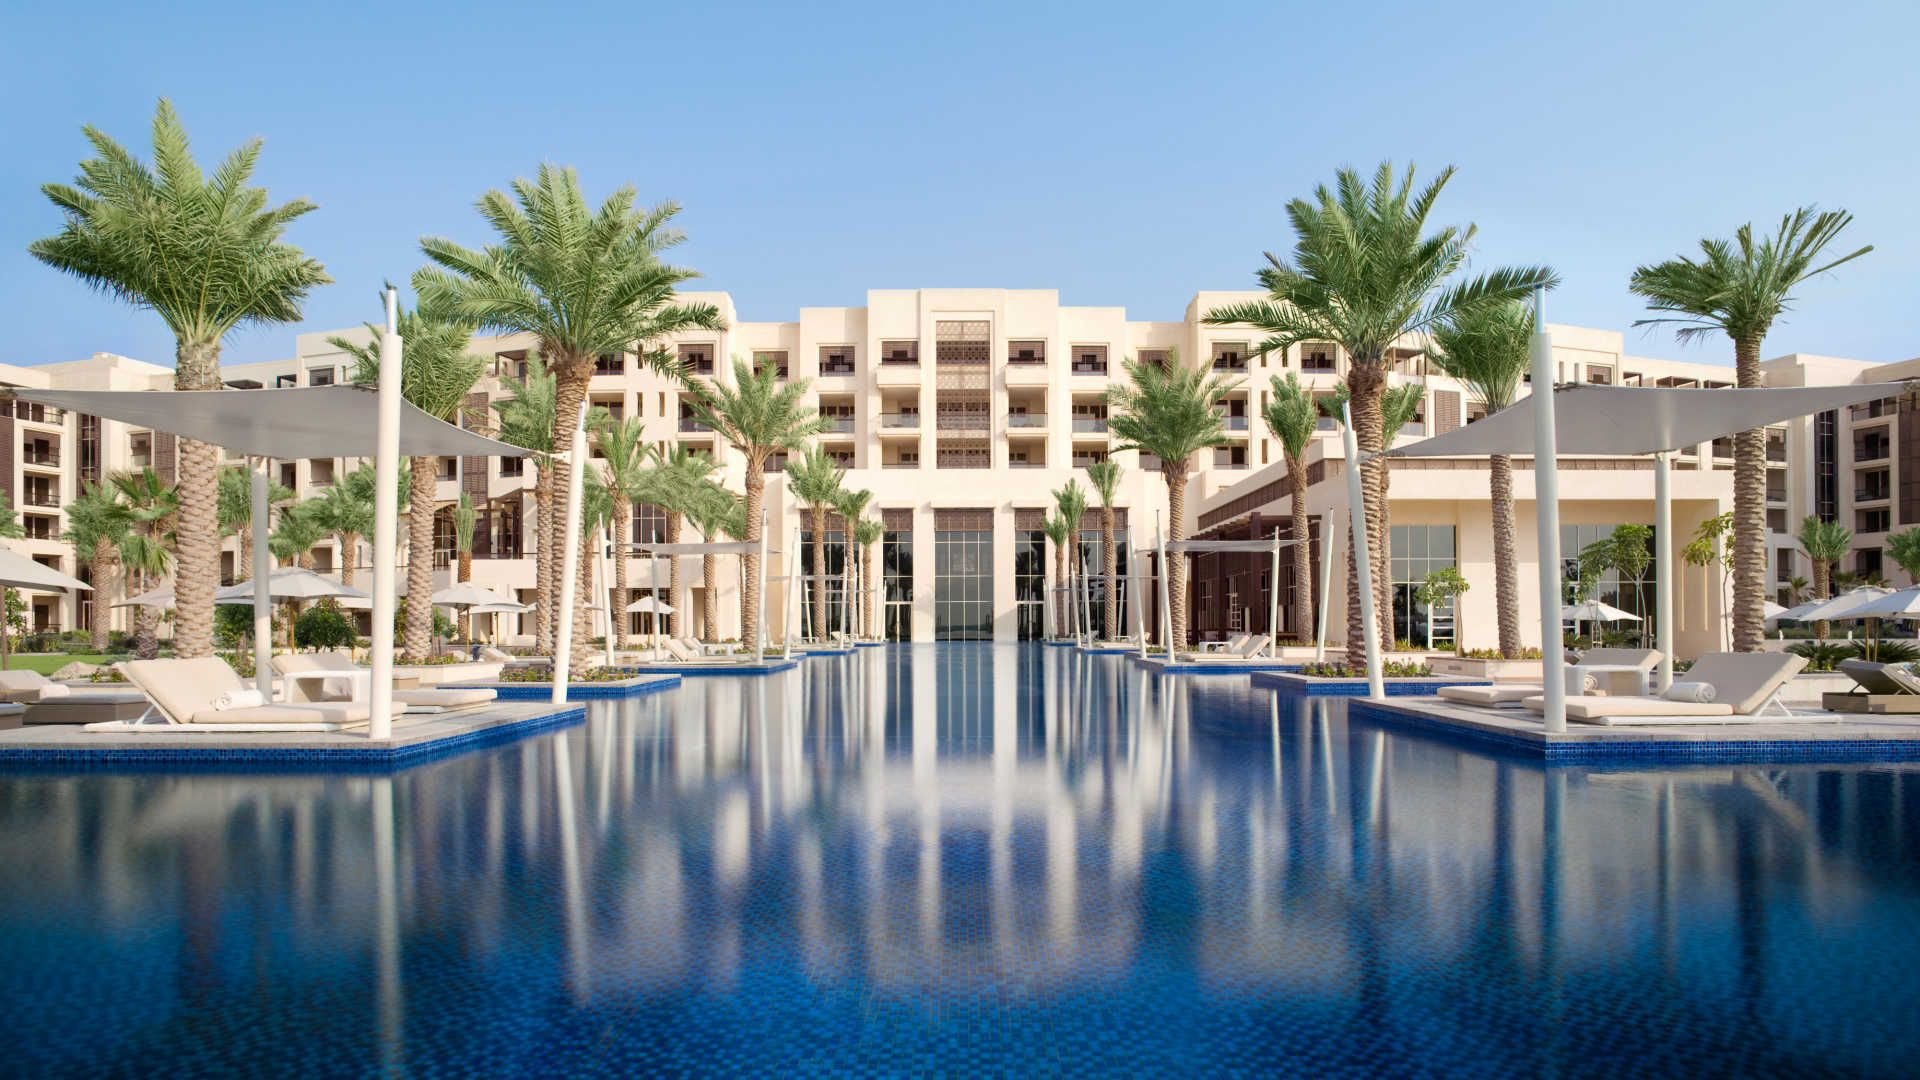 Discover Abu Dhabi Hotels With World Cl Amenities Book Top To Low Budget In